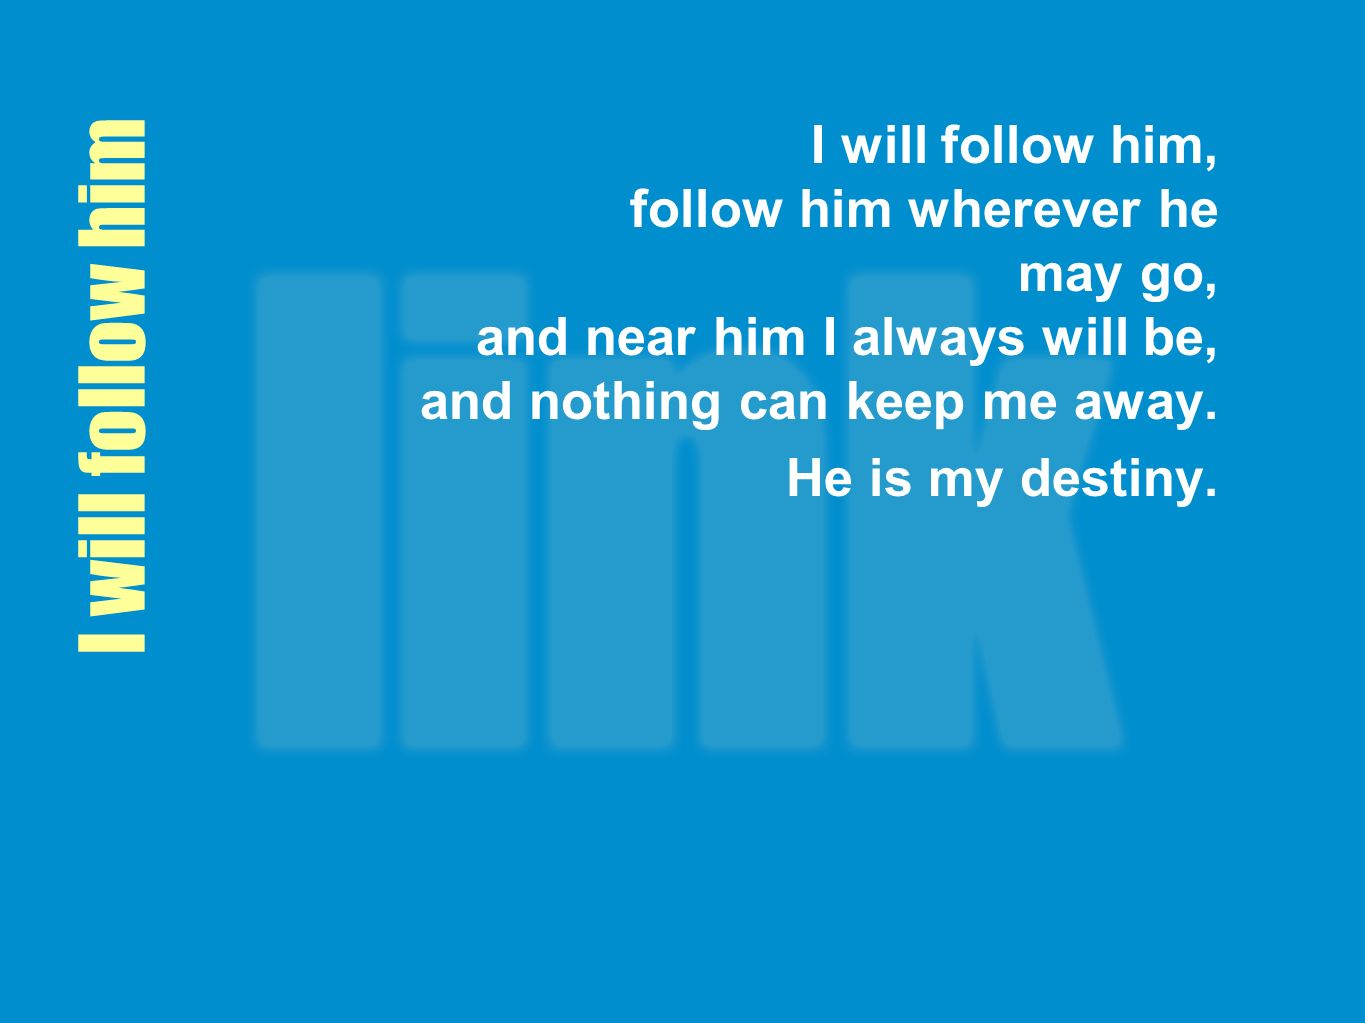 I will follow him, follow him wherever he may go, and near him I always will be, and nothing can keep me away.